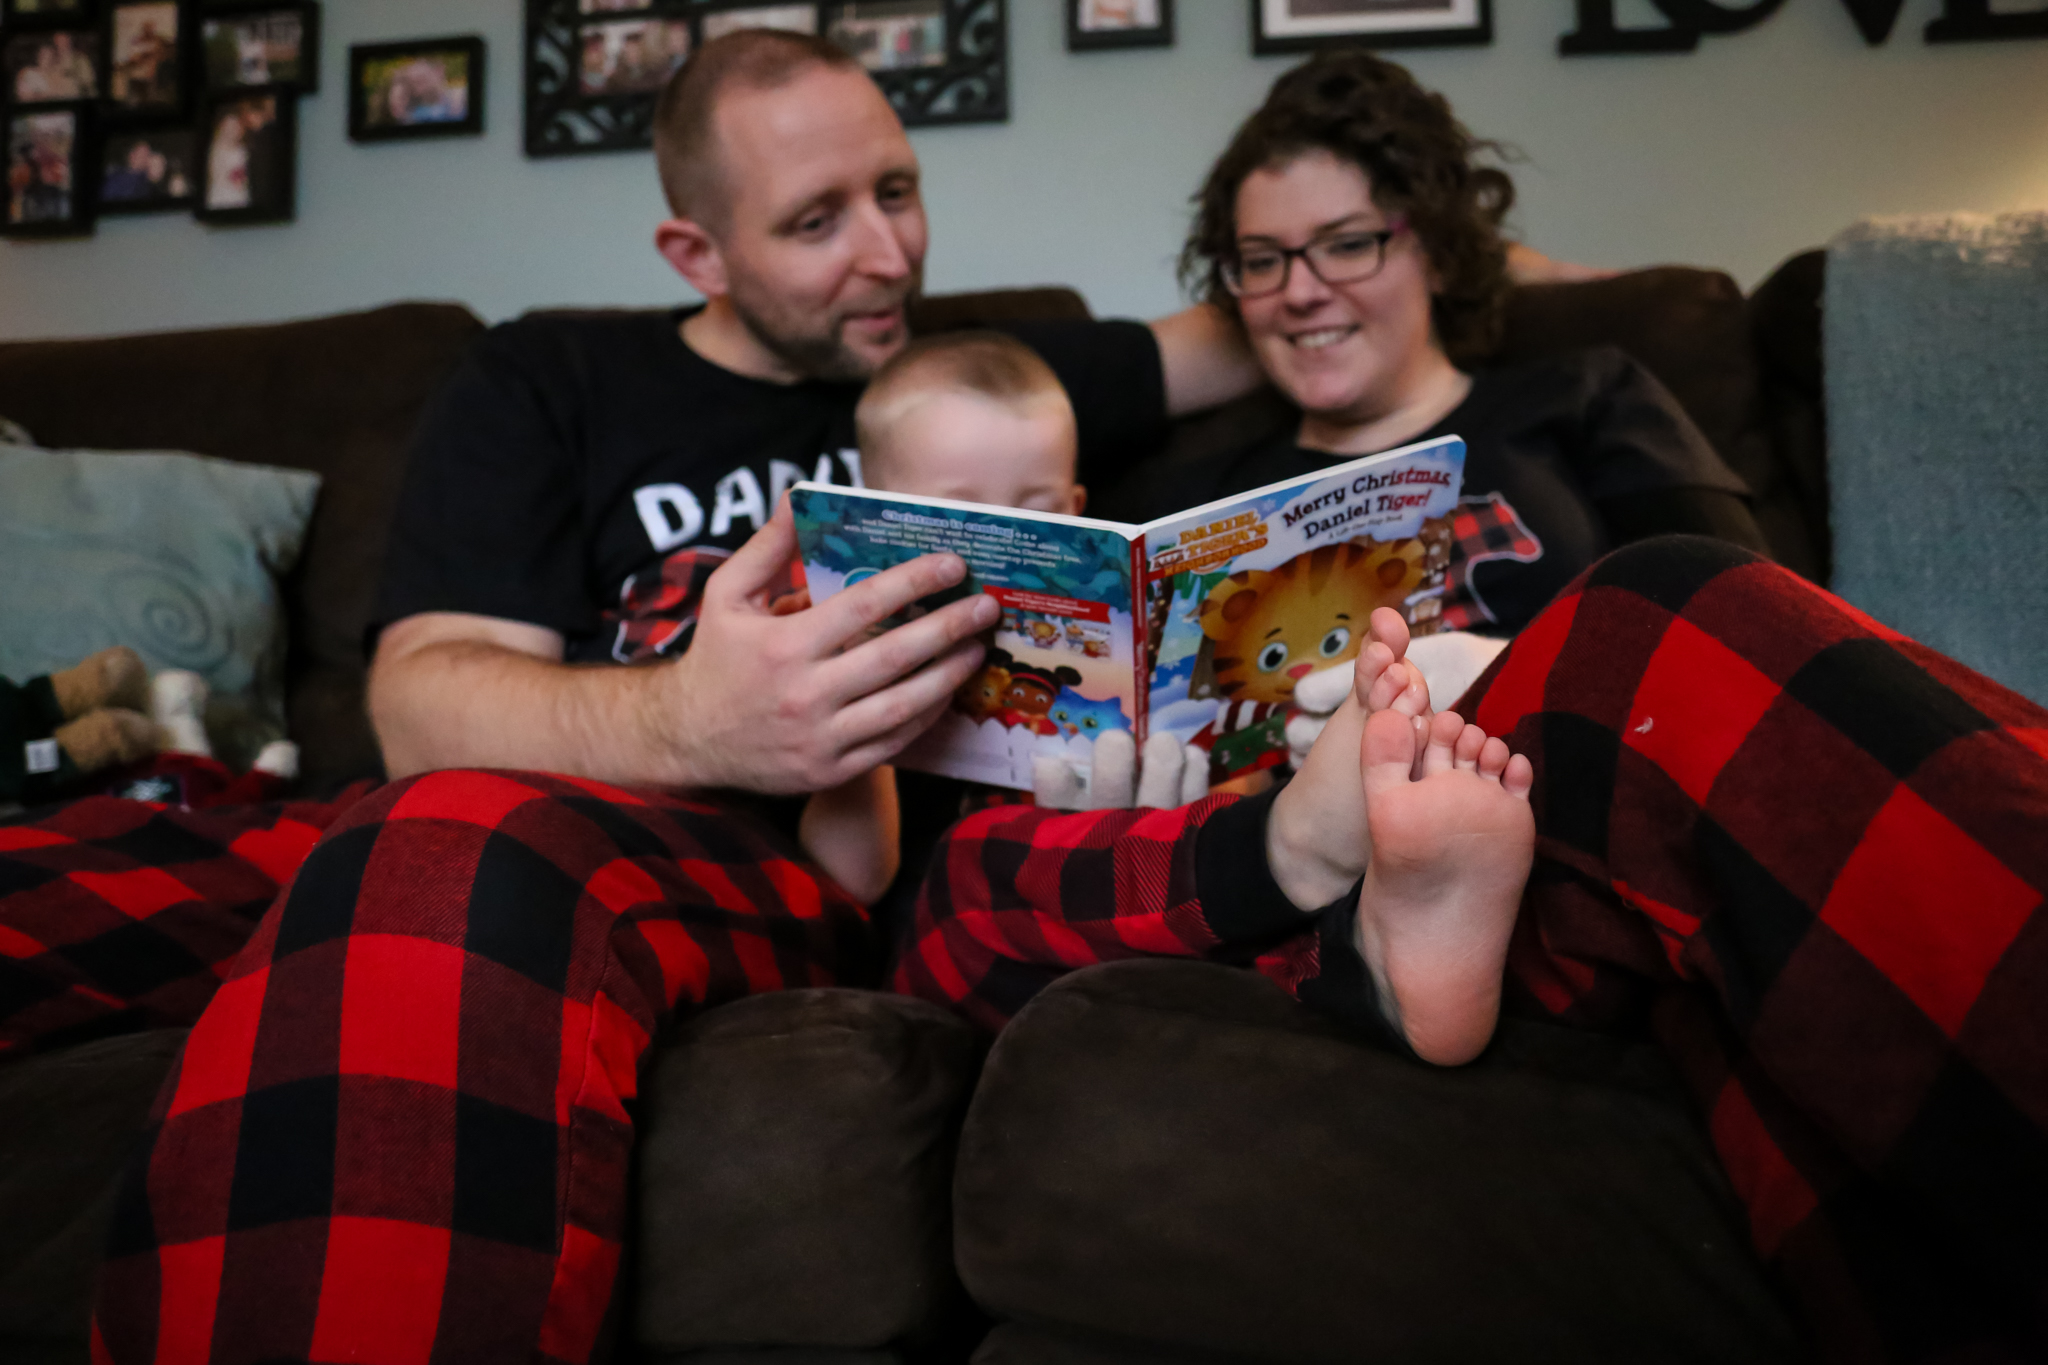 Documenting holiday traditions - a young family reads a Christmas story together in their Emmaus, PA home.